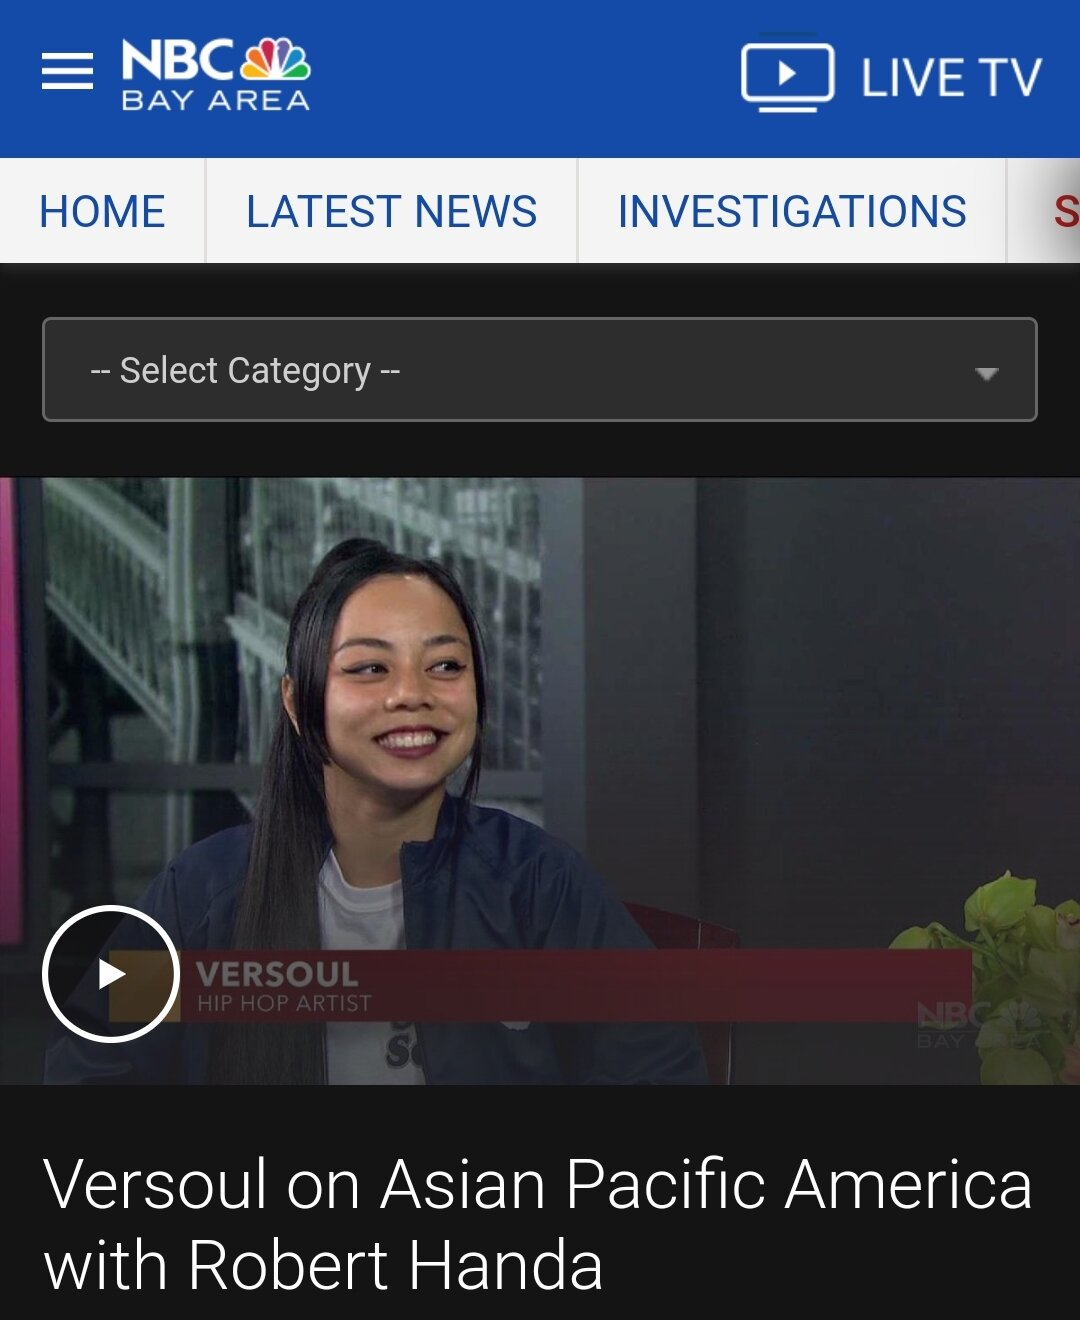 Versoul on Asian Pacific America with Robert Handa